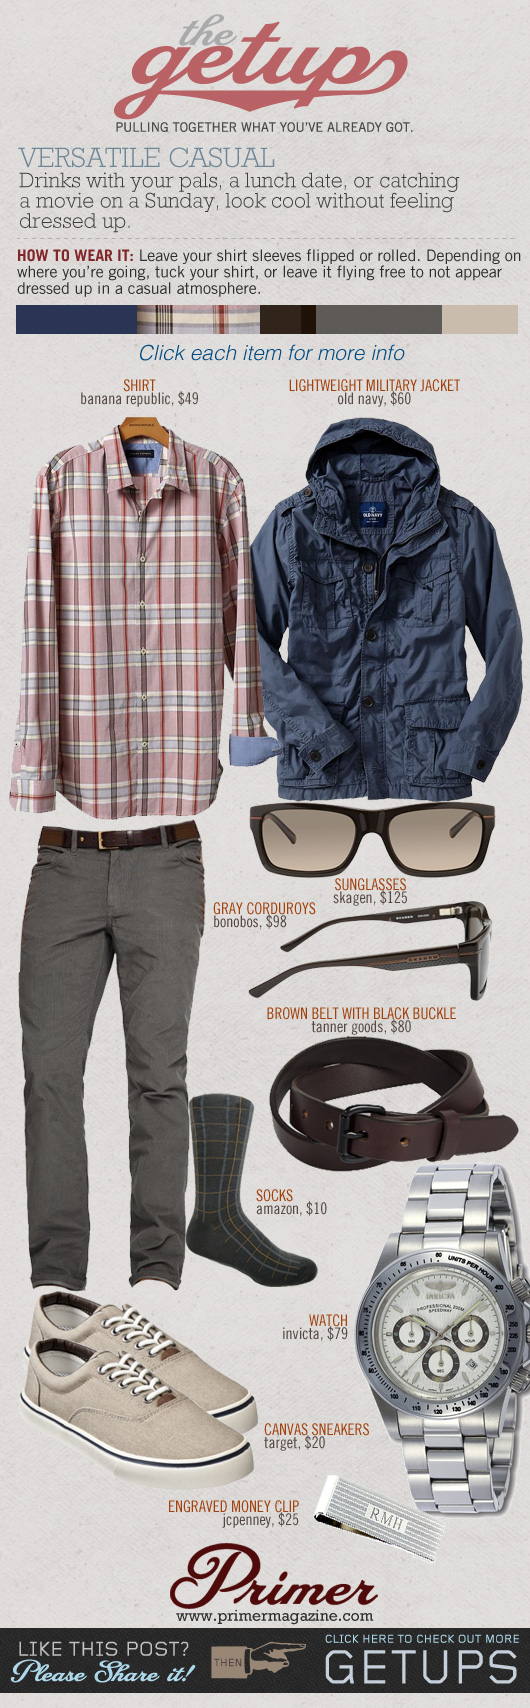 The Getup casual - blue jacket, pink plaid shirt, gray pants, tan canvas sneakers